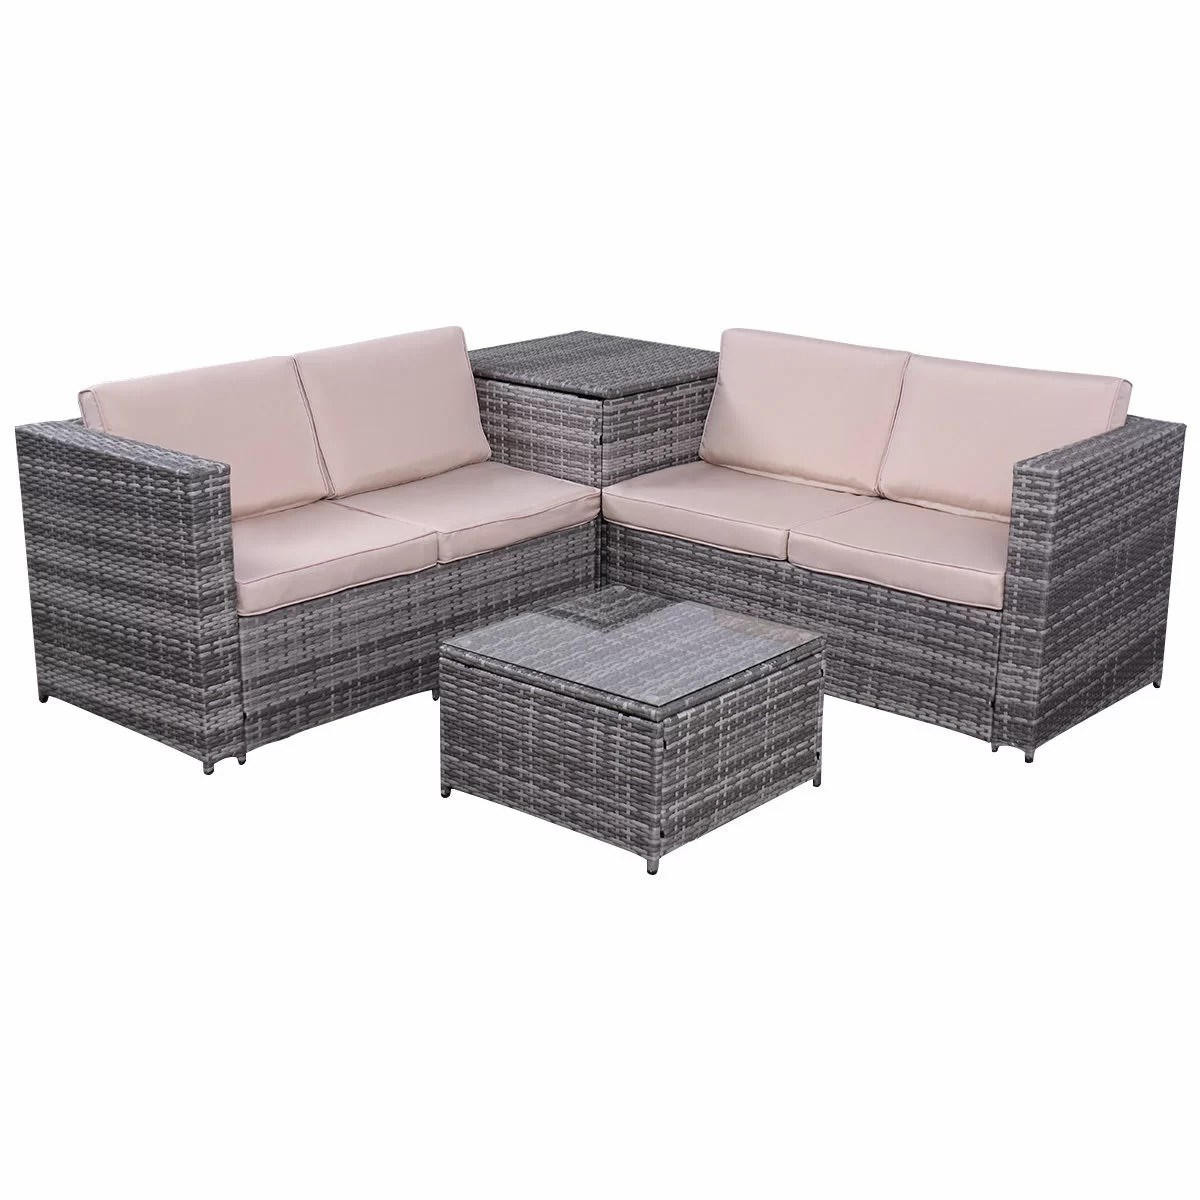 Rattan Sofa Gleeson 4 Piece Patio Rattan Sofa Seating Group With Cushions